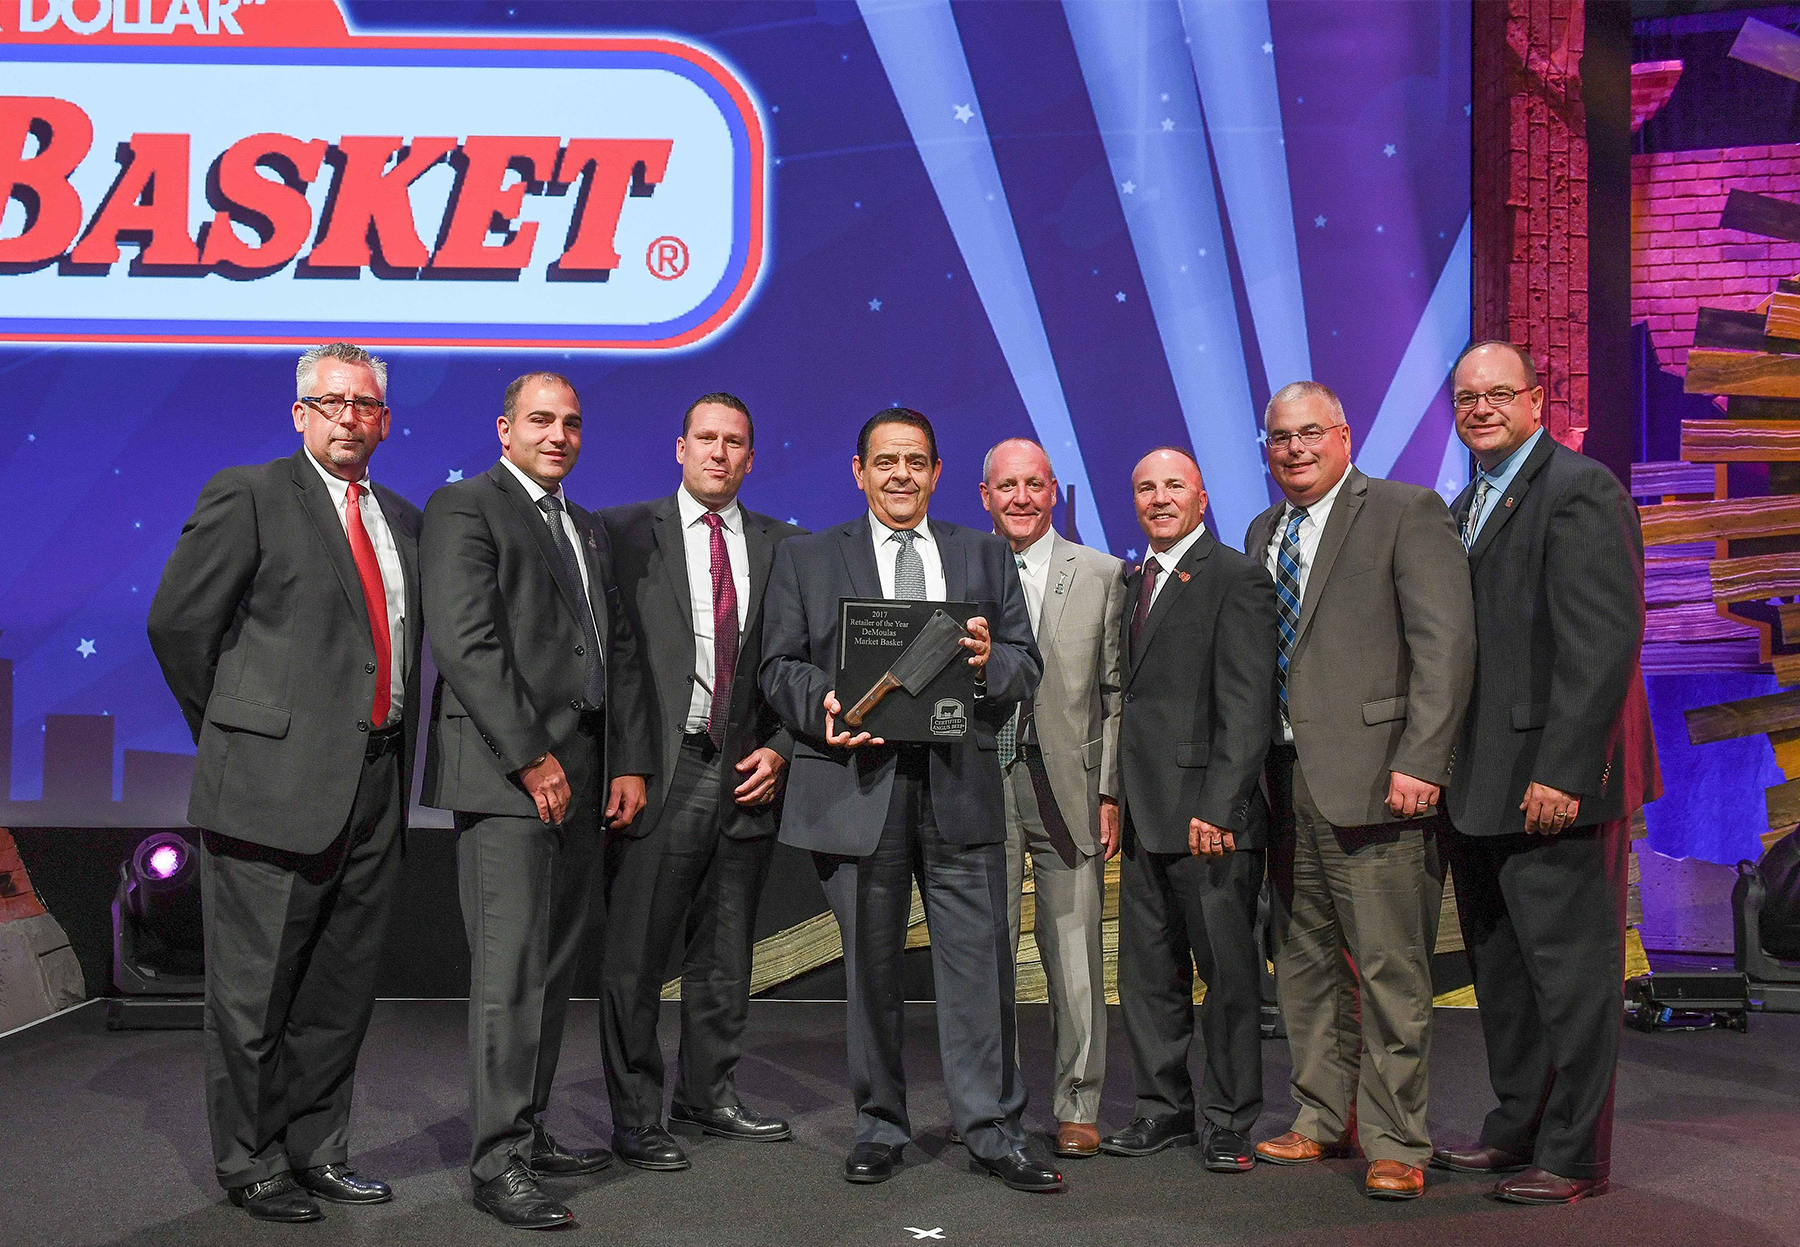 CAB honors DeMoula's Market Basket.